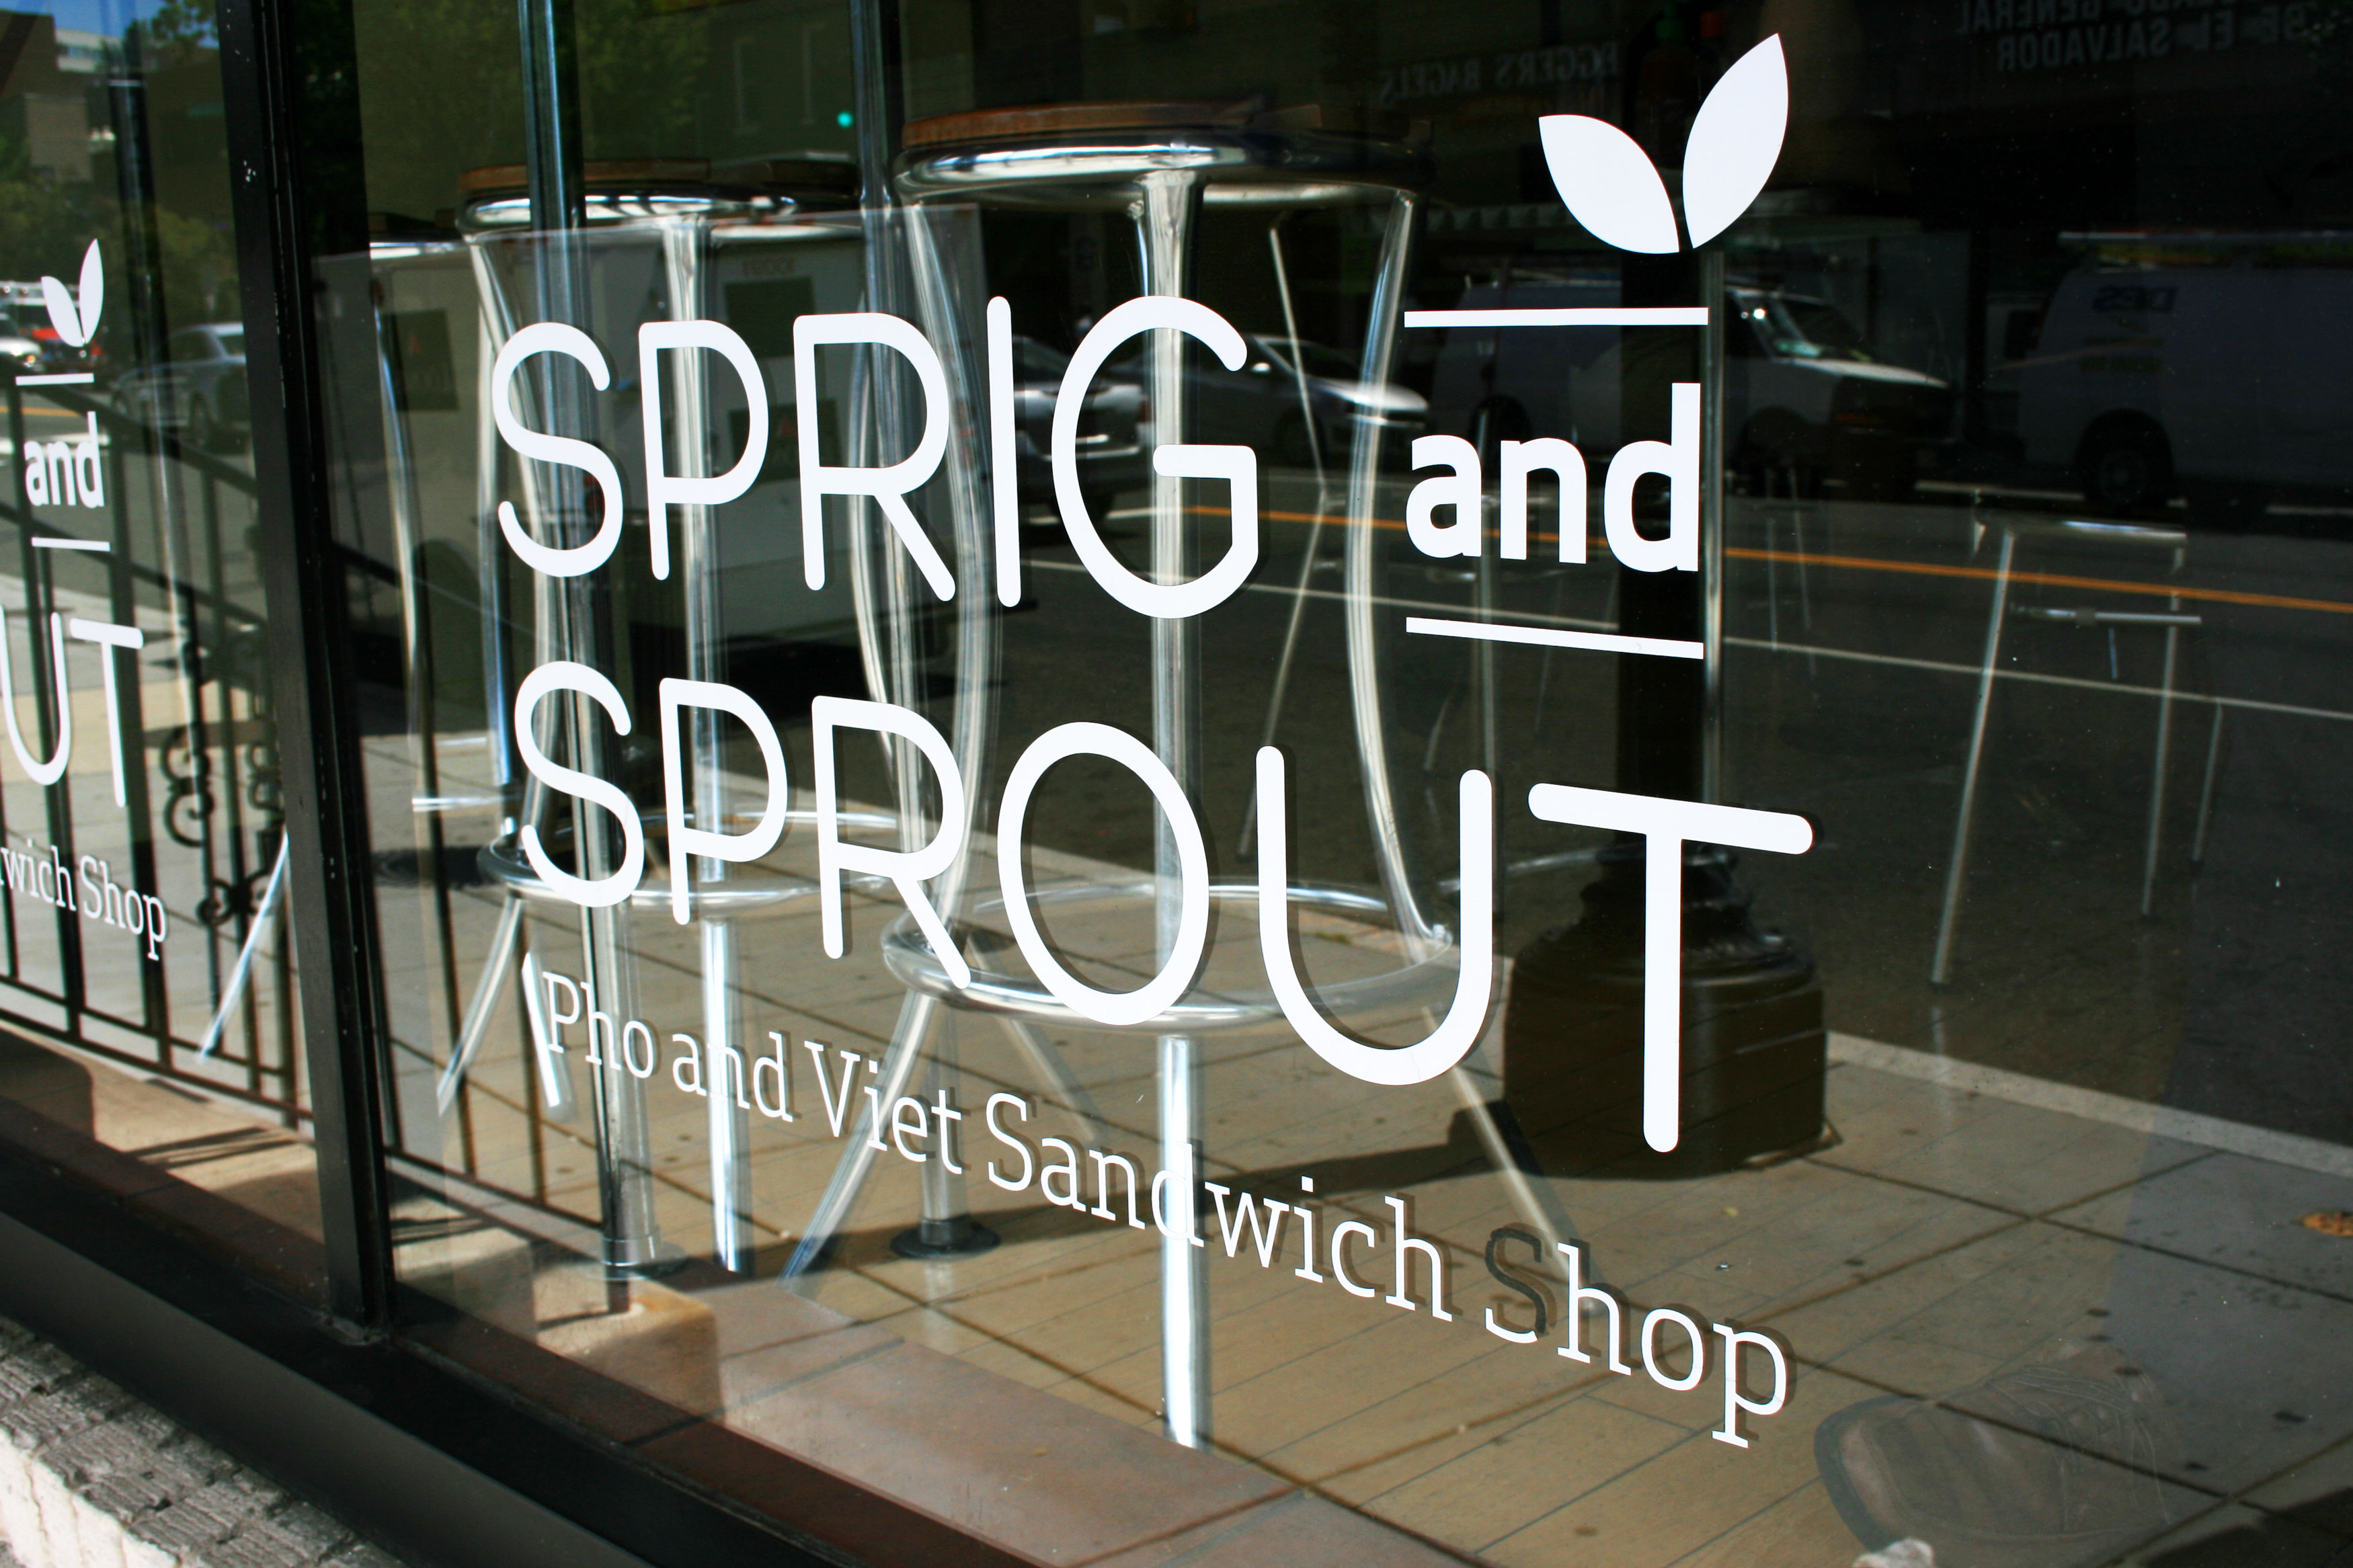 Sprig and Sprout